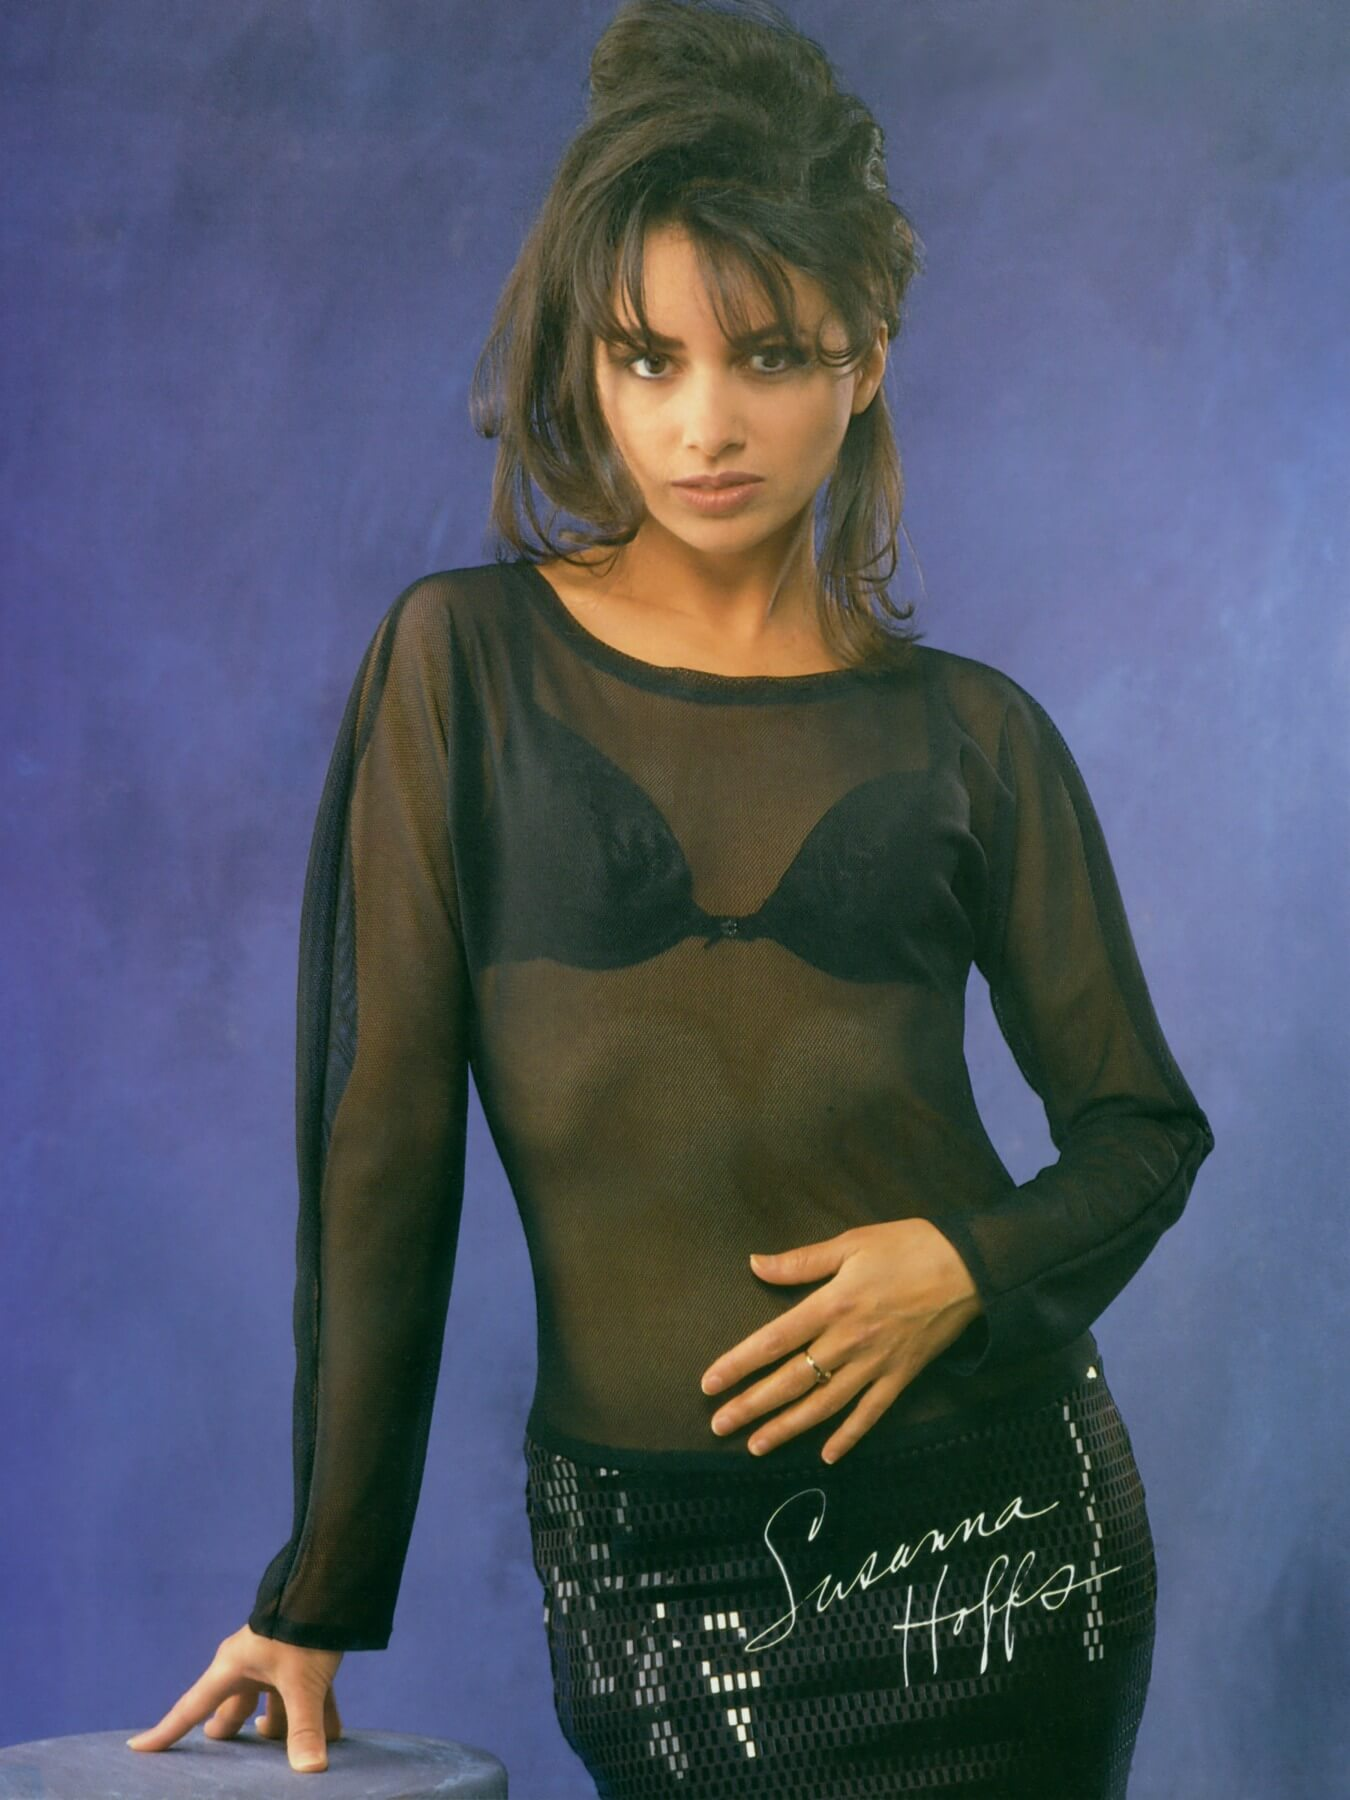 Susanna Hoffs sexy cleavages picture